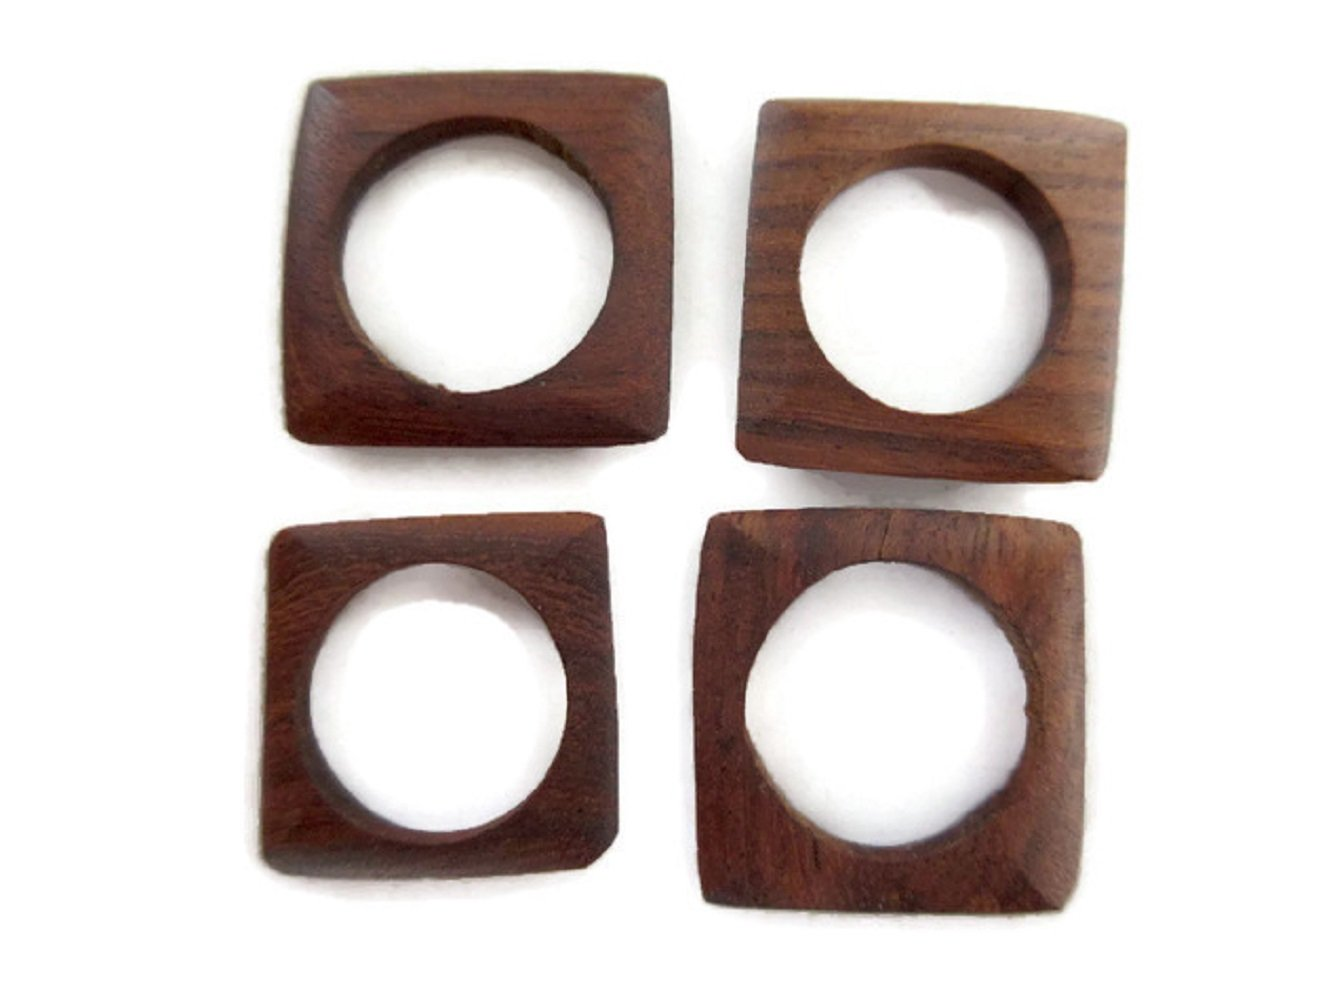 Hand Carved Natural Teak Wood Ring/Bead, Brown Wooden Square Ring, Wooden Jewelry Supplies, GDS1045/4 (50 Pieces)